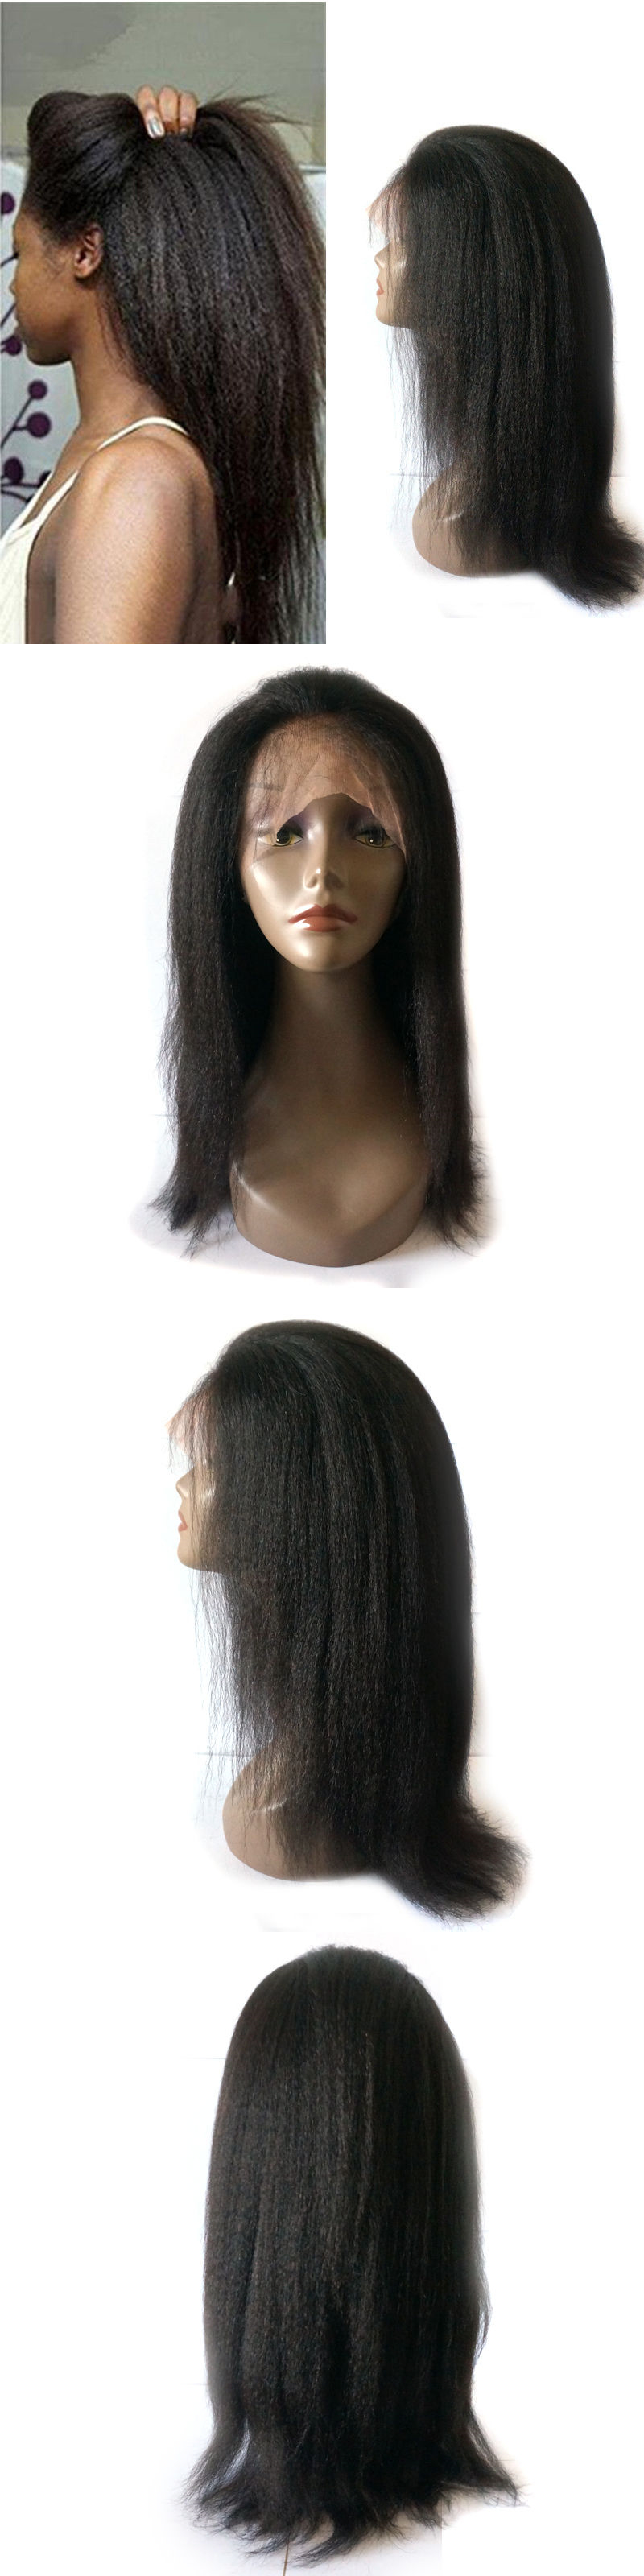 Wigs and Hairpieces  Pre Plucked 360 Lace Frontal Wig Italian Yaki  Brazilian Human Hair Wig 2ae68ed9f2